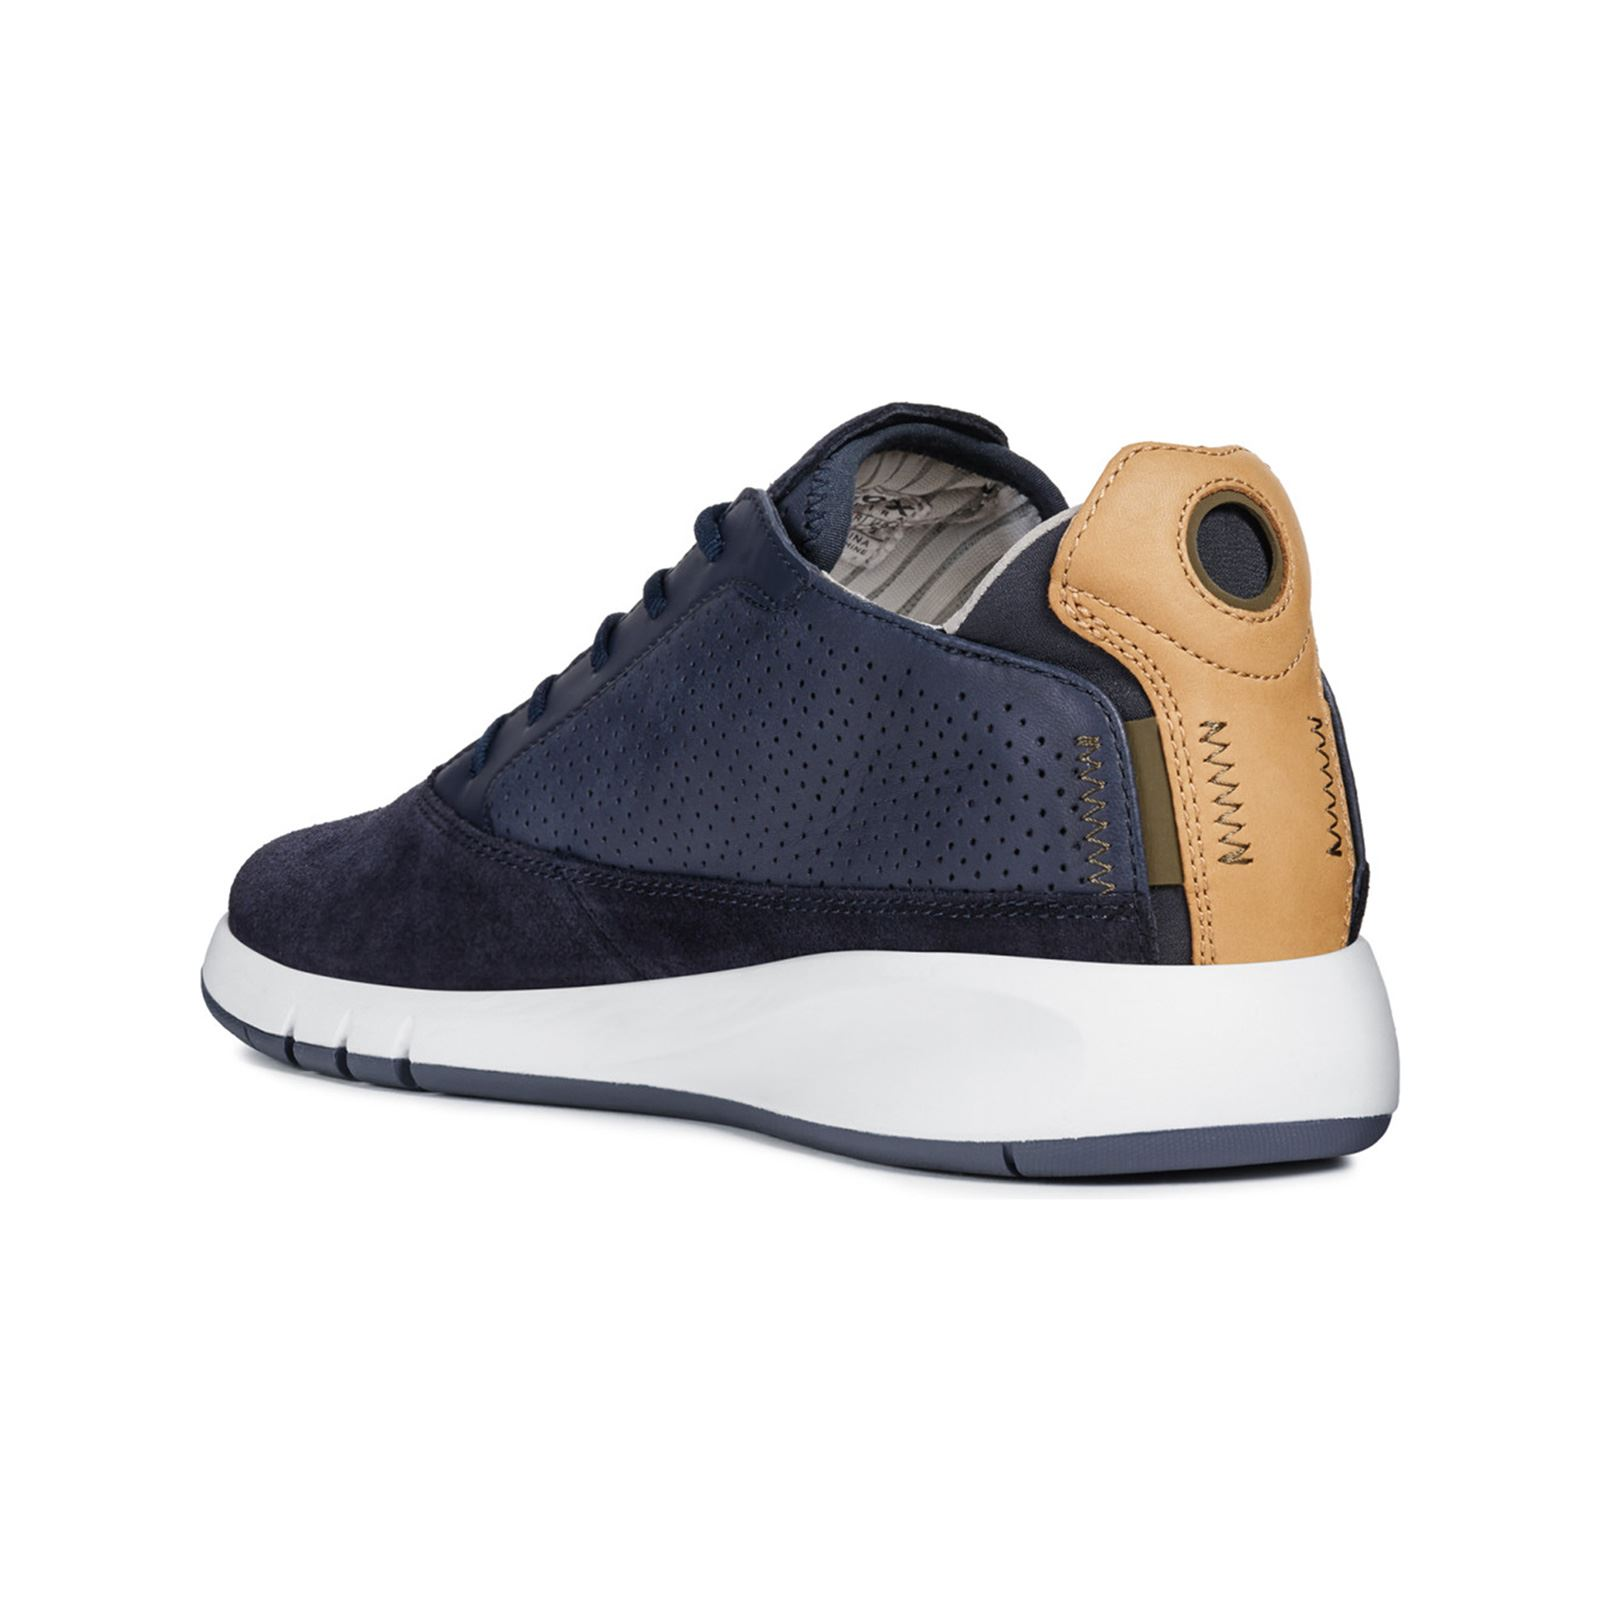 marineblau Sneakers Geox